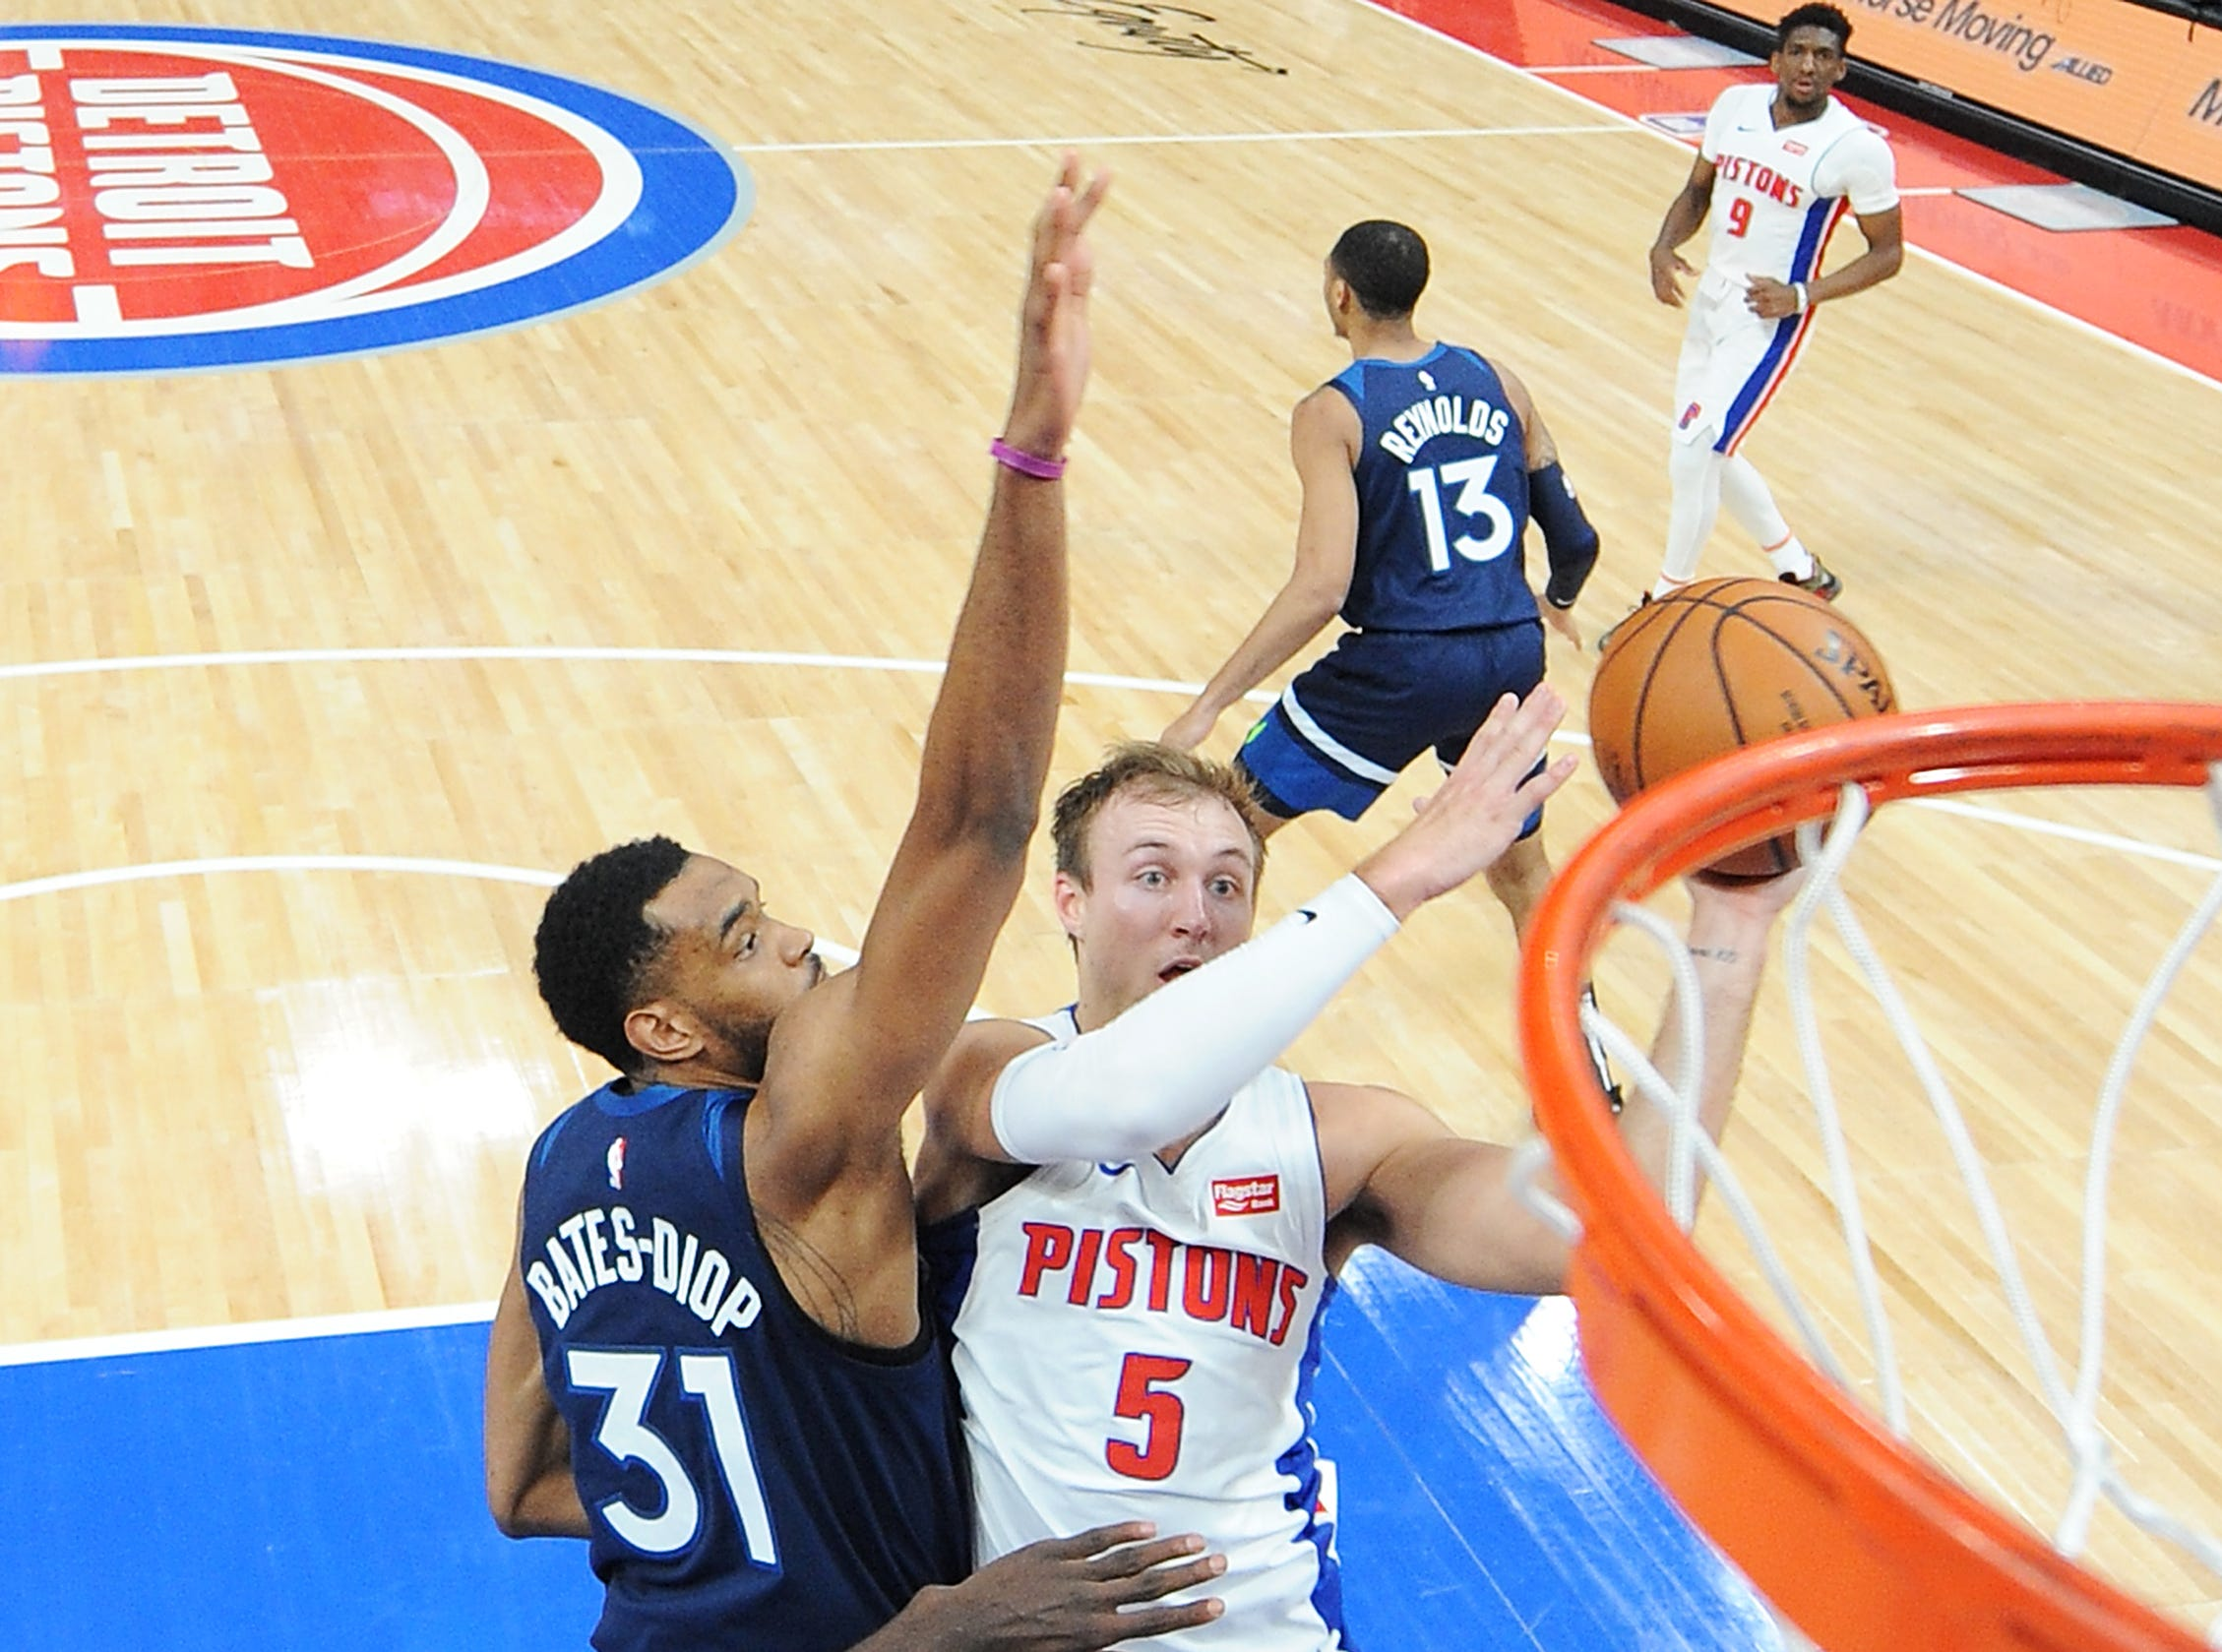 Pistons' Luke Kennard scores over Timberwolves' Keita Bates-Diop in the fourth quarter.